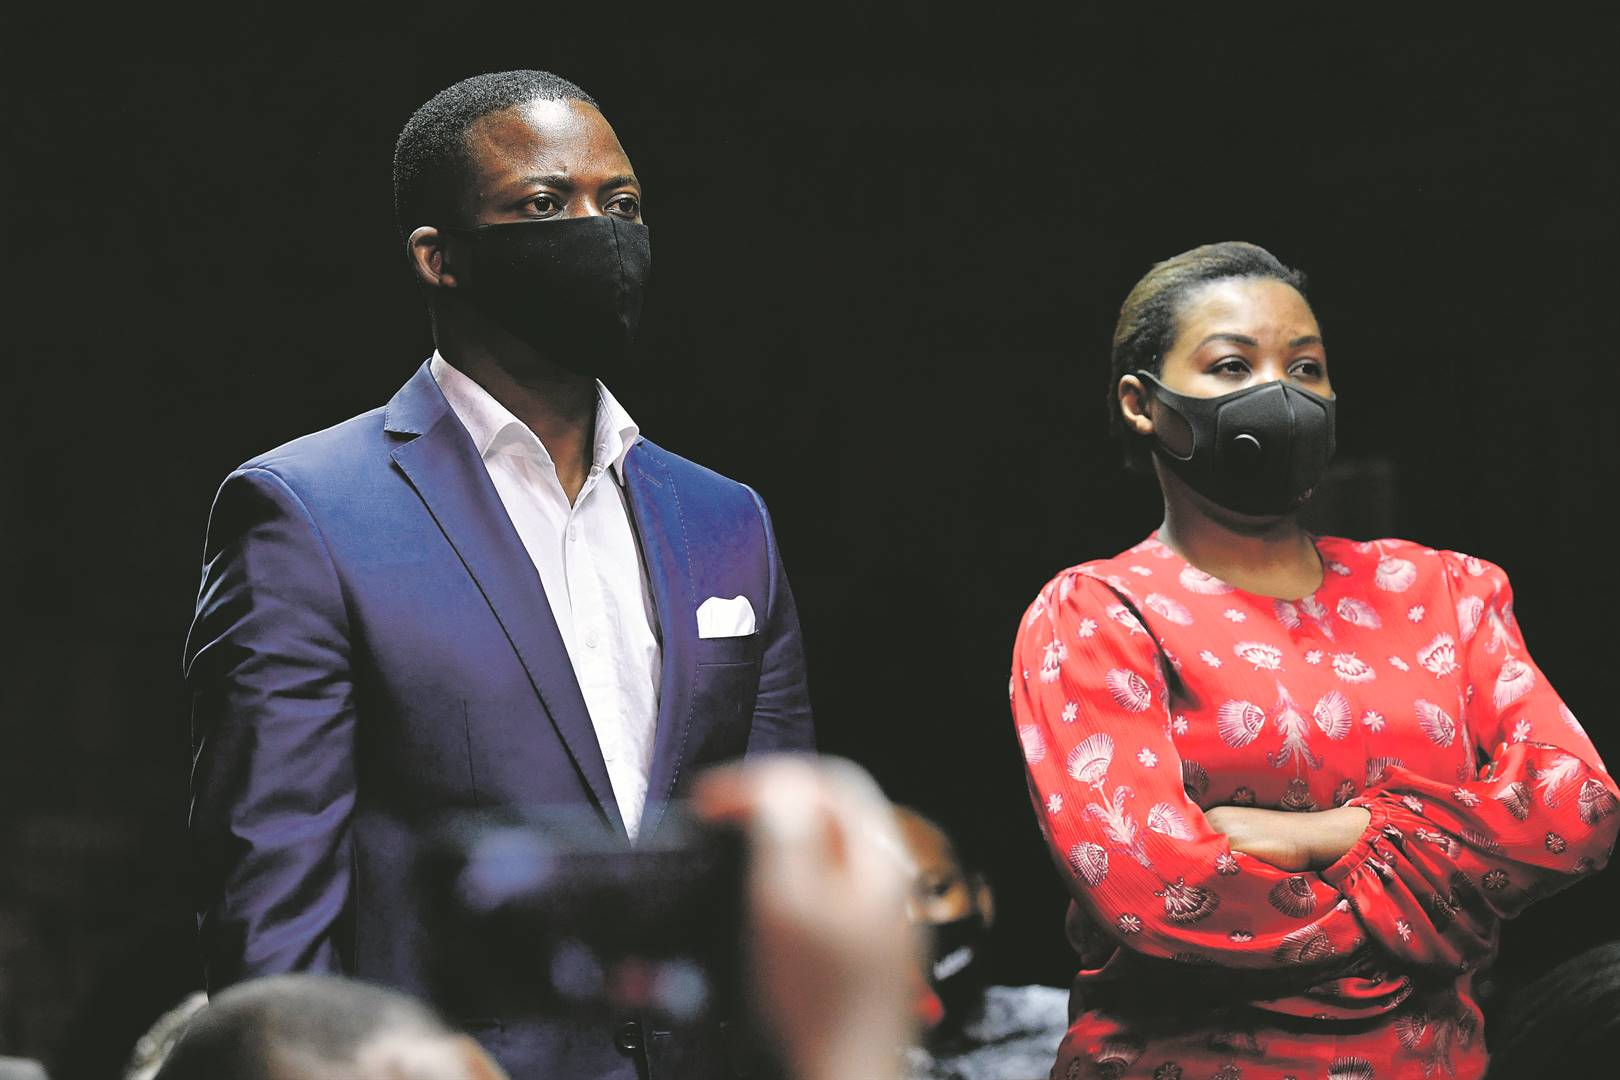 Shepherd Bushiri has skipped the country, despite bail conditions expressly prohibiting any form of international travel.